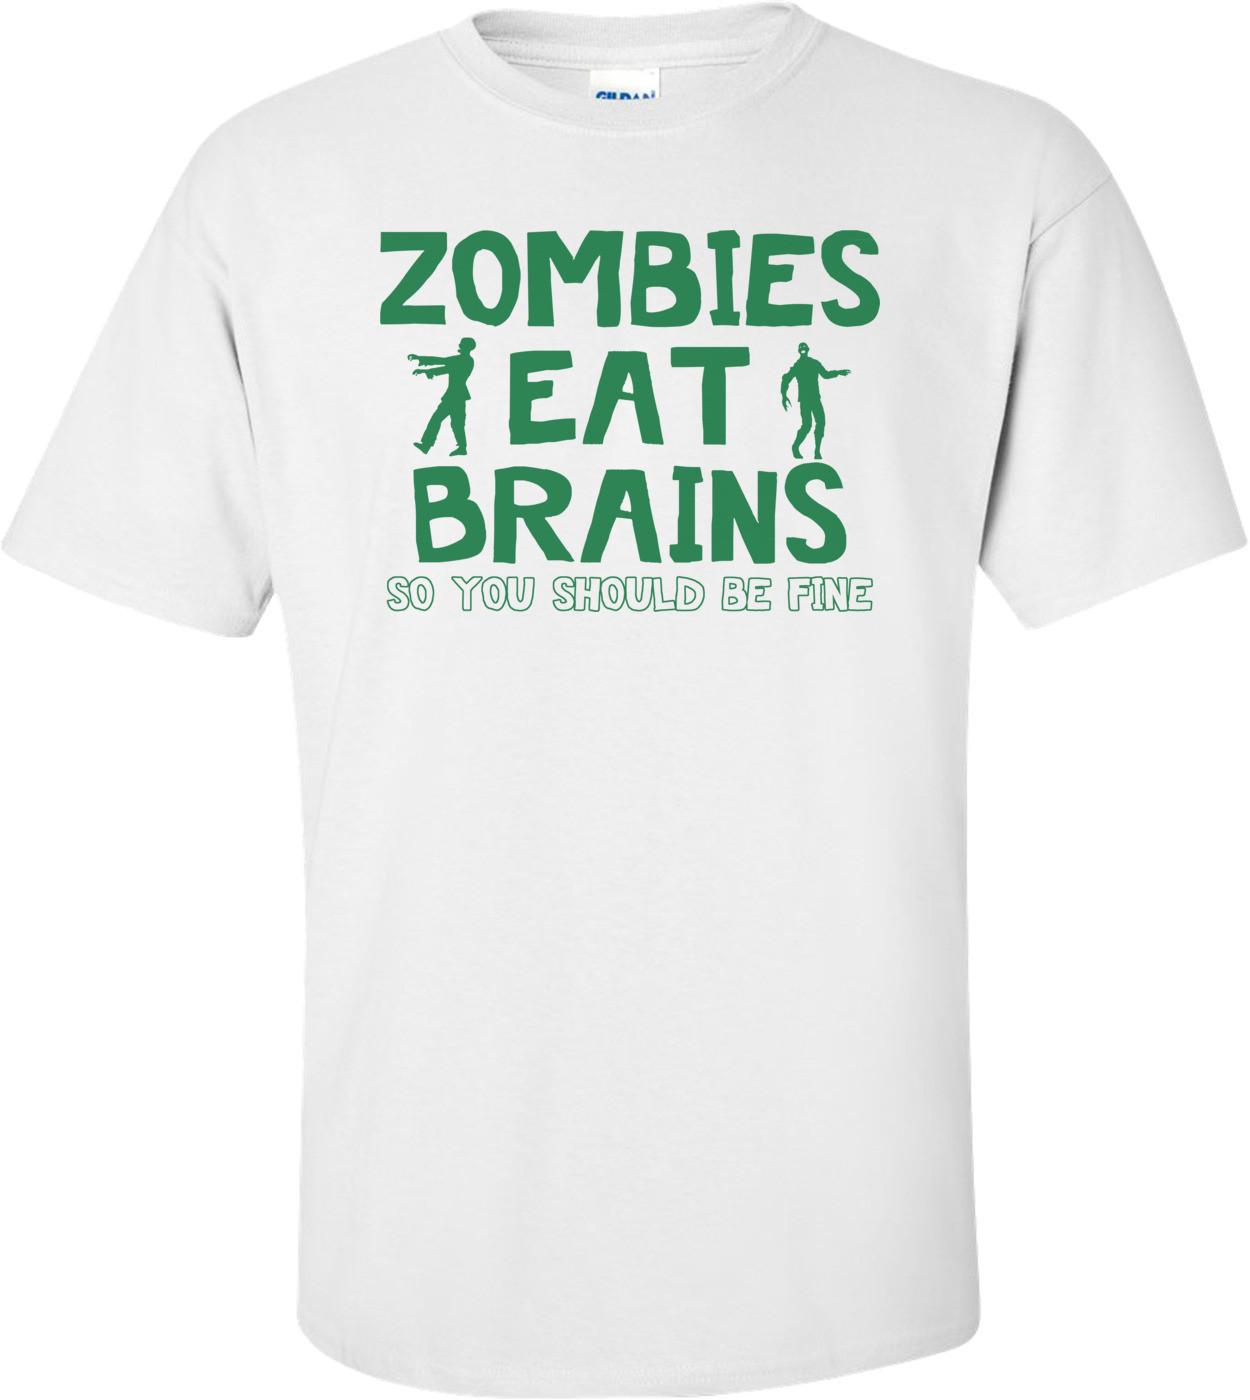 Zombies Eat Brains.  So You Should Be Fine Funny Zombie Shirt